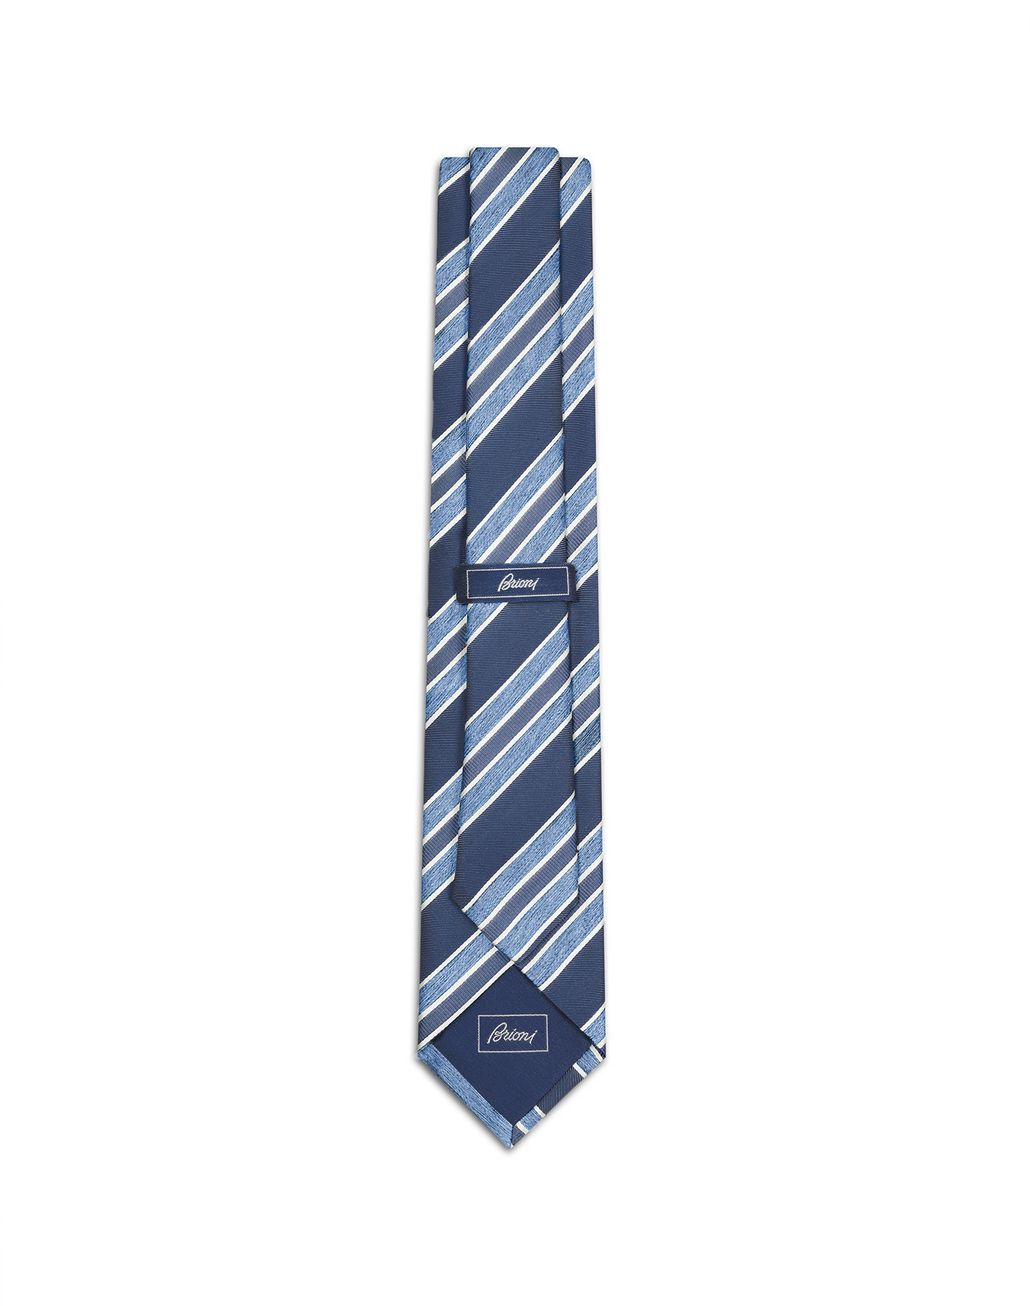 BRIONI Navy Blue and Sky Blue Regimental Tie Tie U r